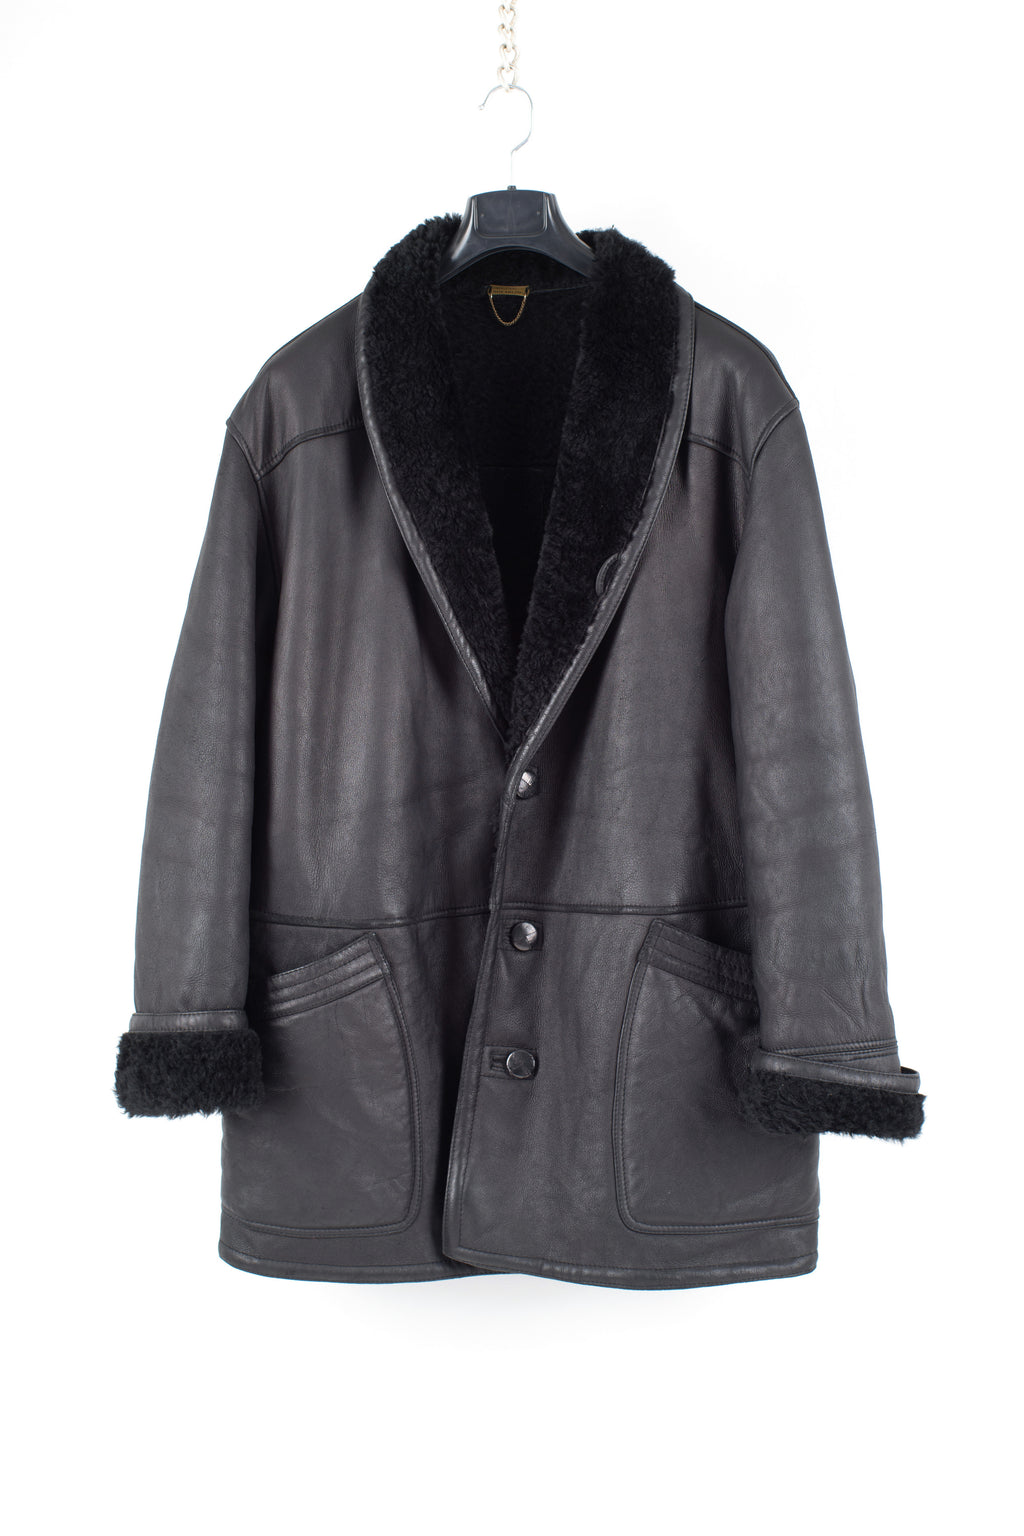 Men's Black Sheepskin Shearling Shawl Collar Coat, Men's XXL